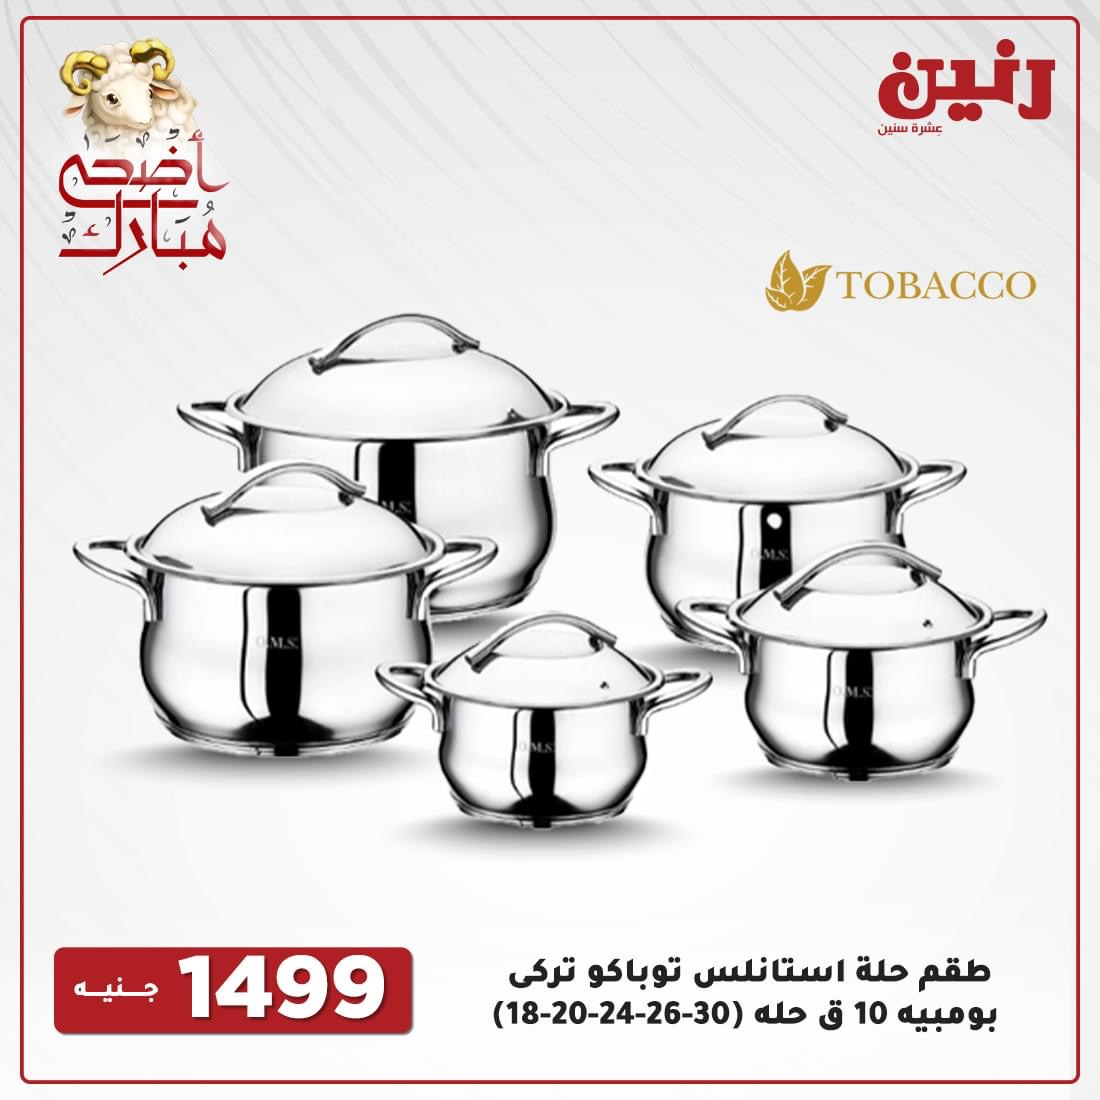 Raneen offers today for appliances and household appliances from July 22 to 24, 2021 32